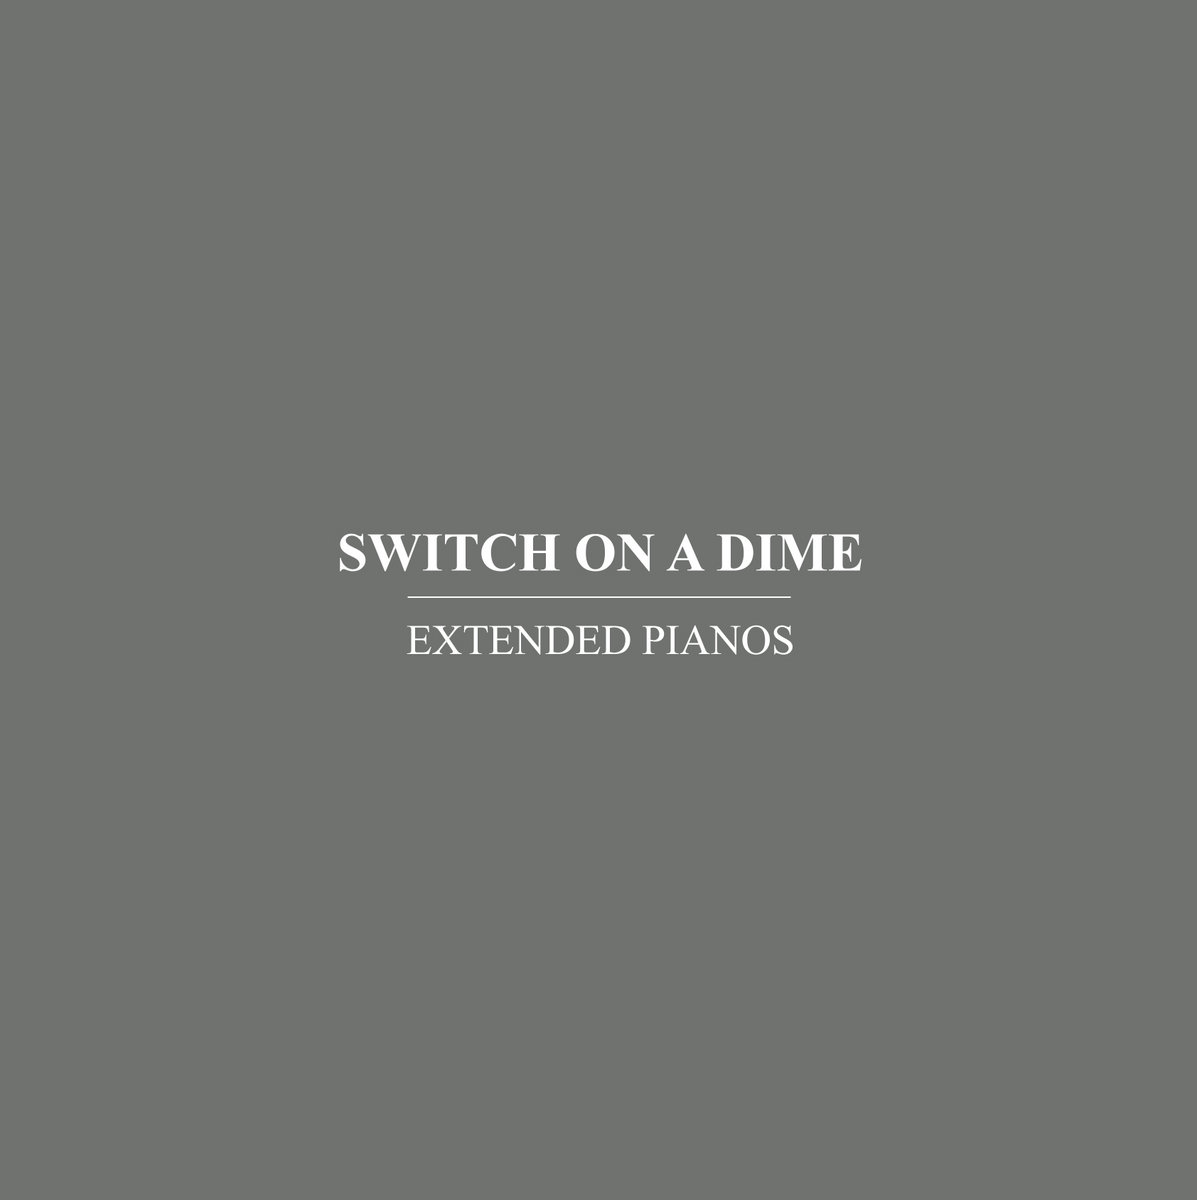 Imm004 Switch On A Dime